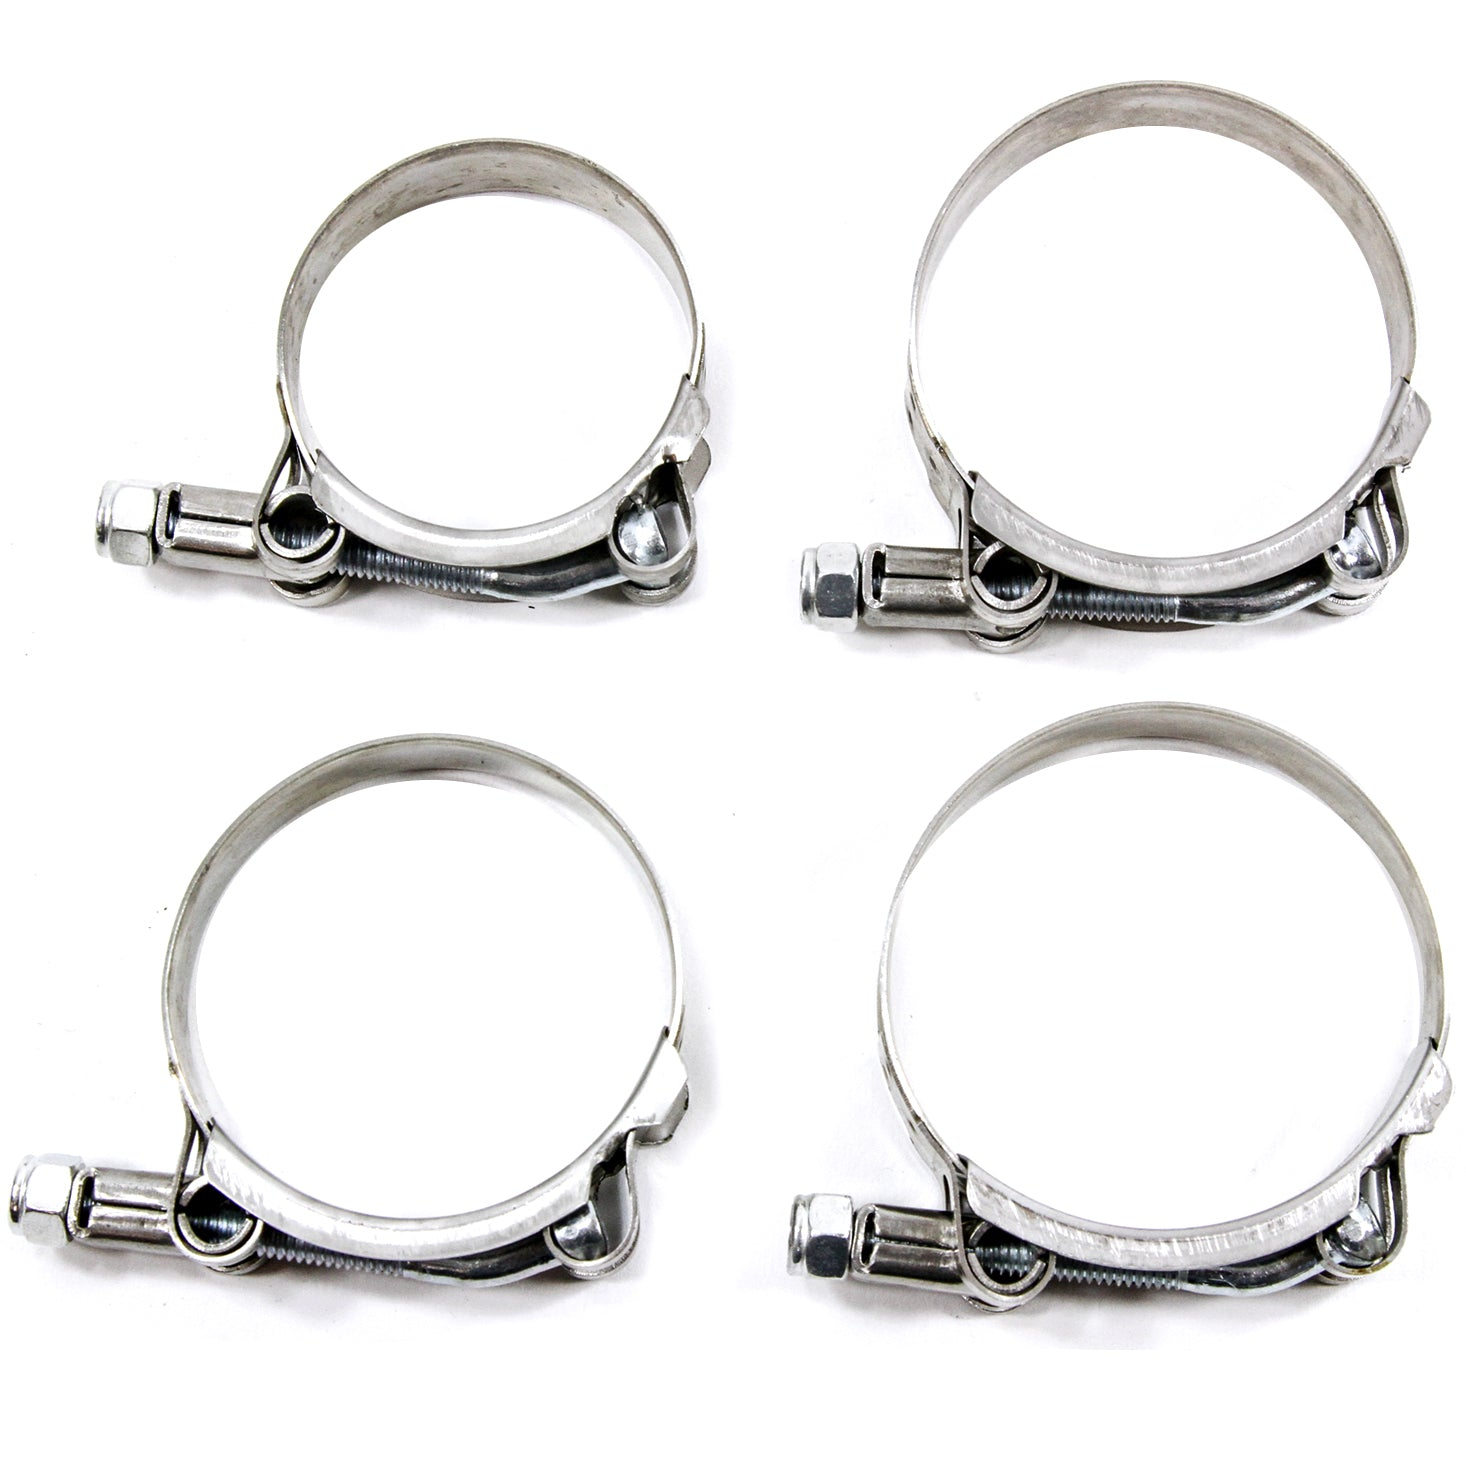 10ea Bulk of Stainless Metal Steel Hose Clamps Assortment Variety Hoseclamp 40pc